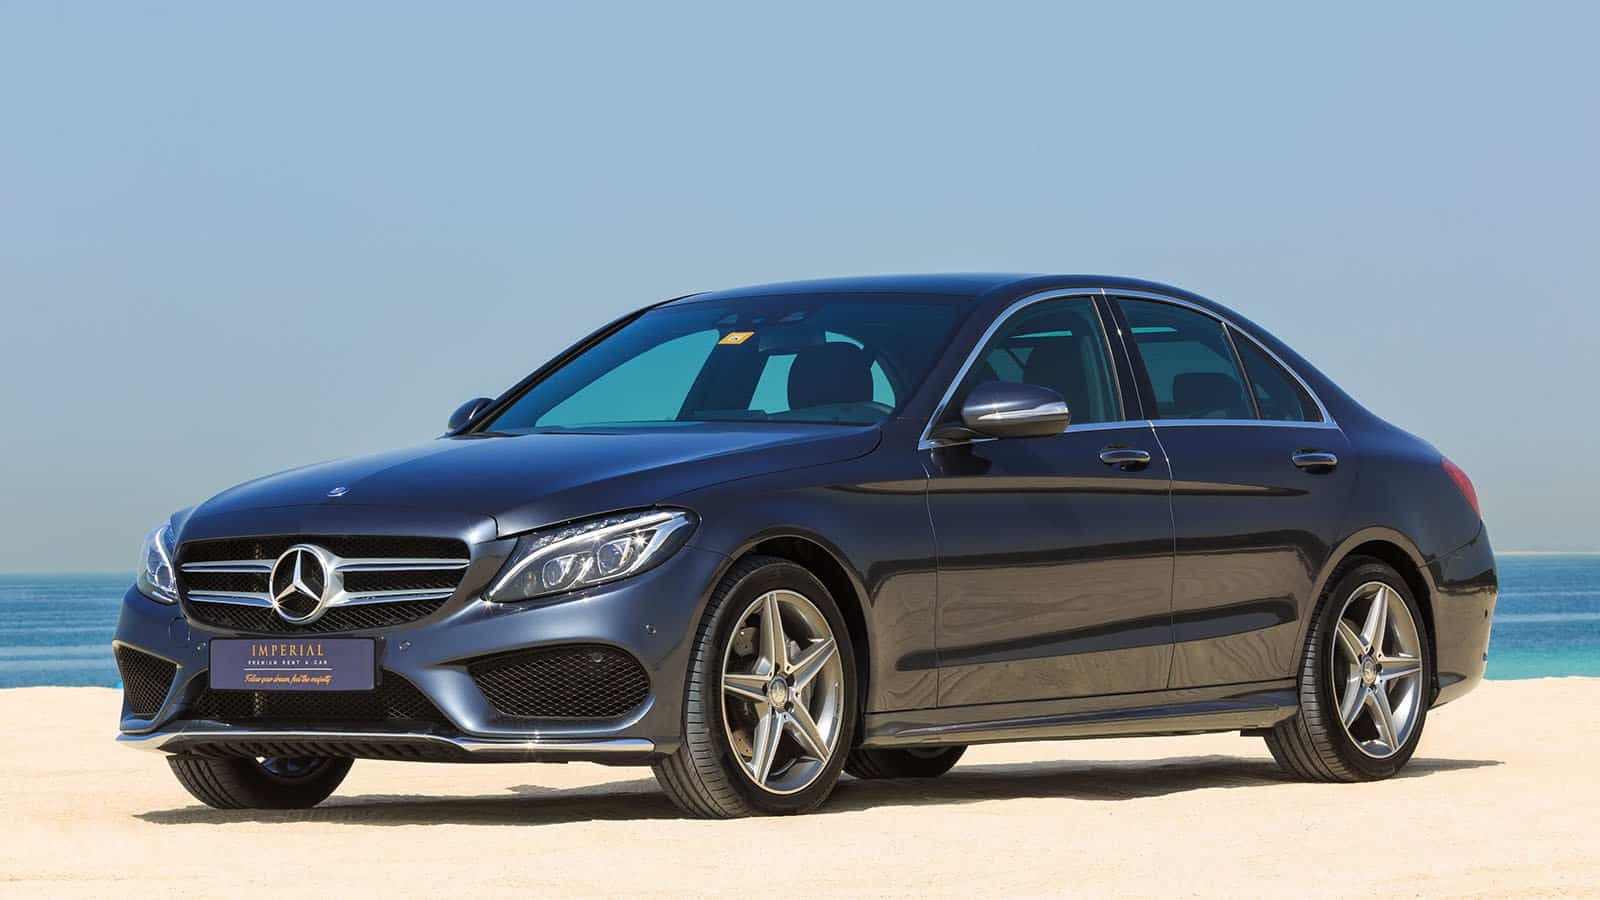 Mercedes Benz C200 Rent Dubai Imperial Premium Rent A Car